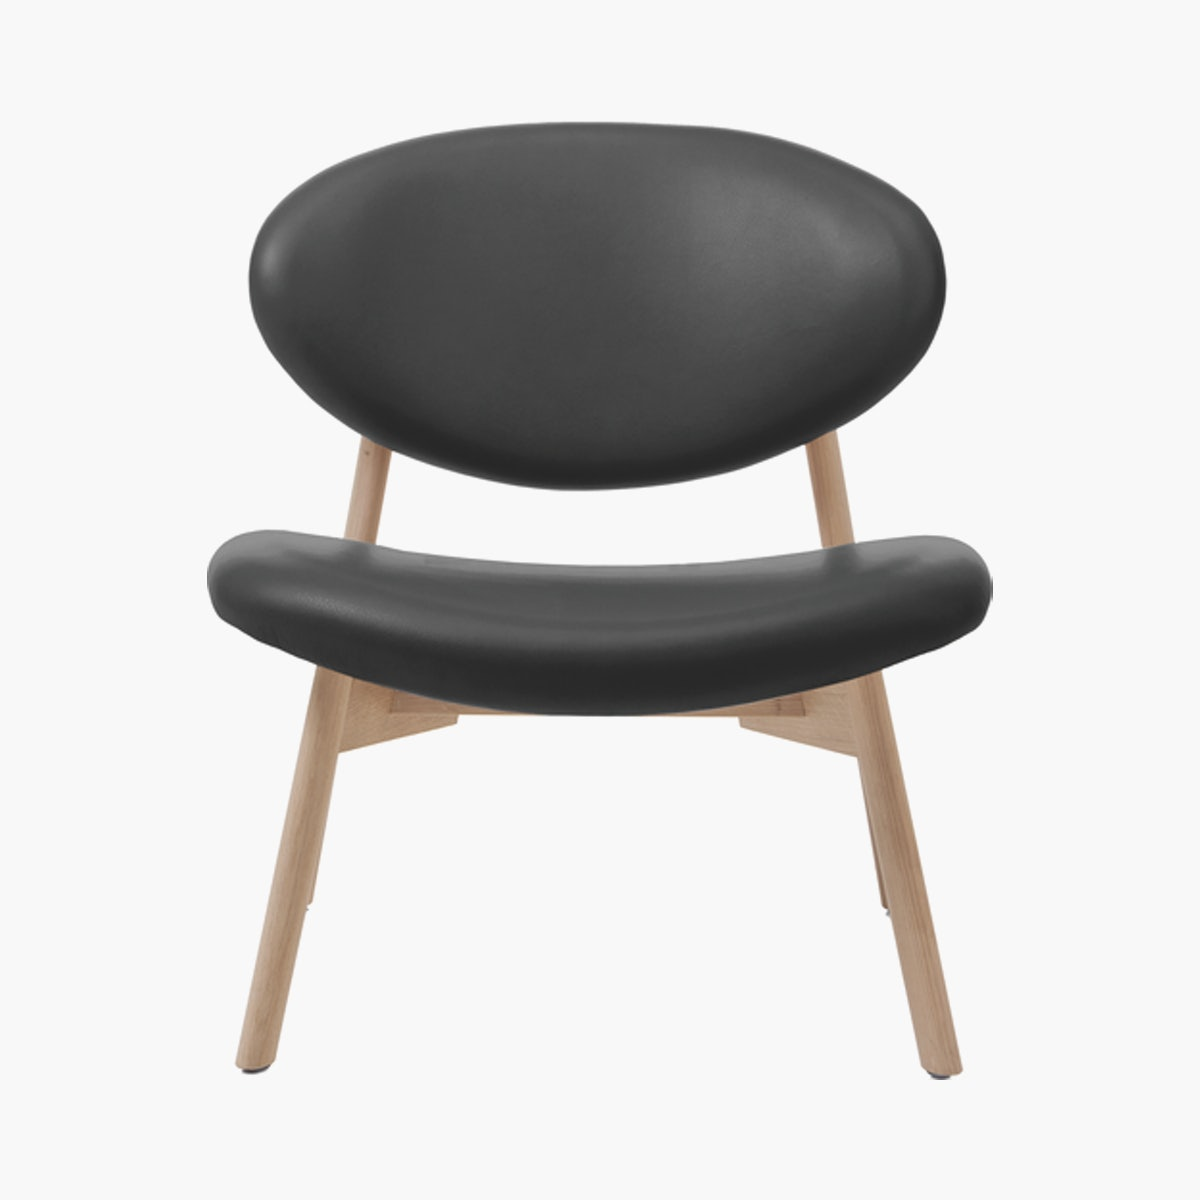 Ovoid Lounge Chair